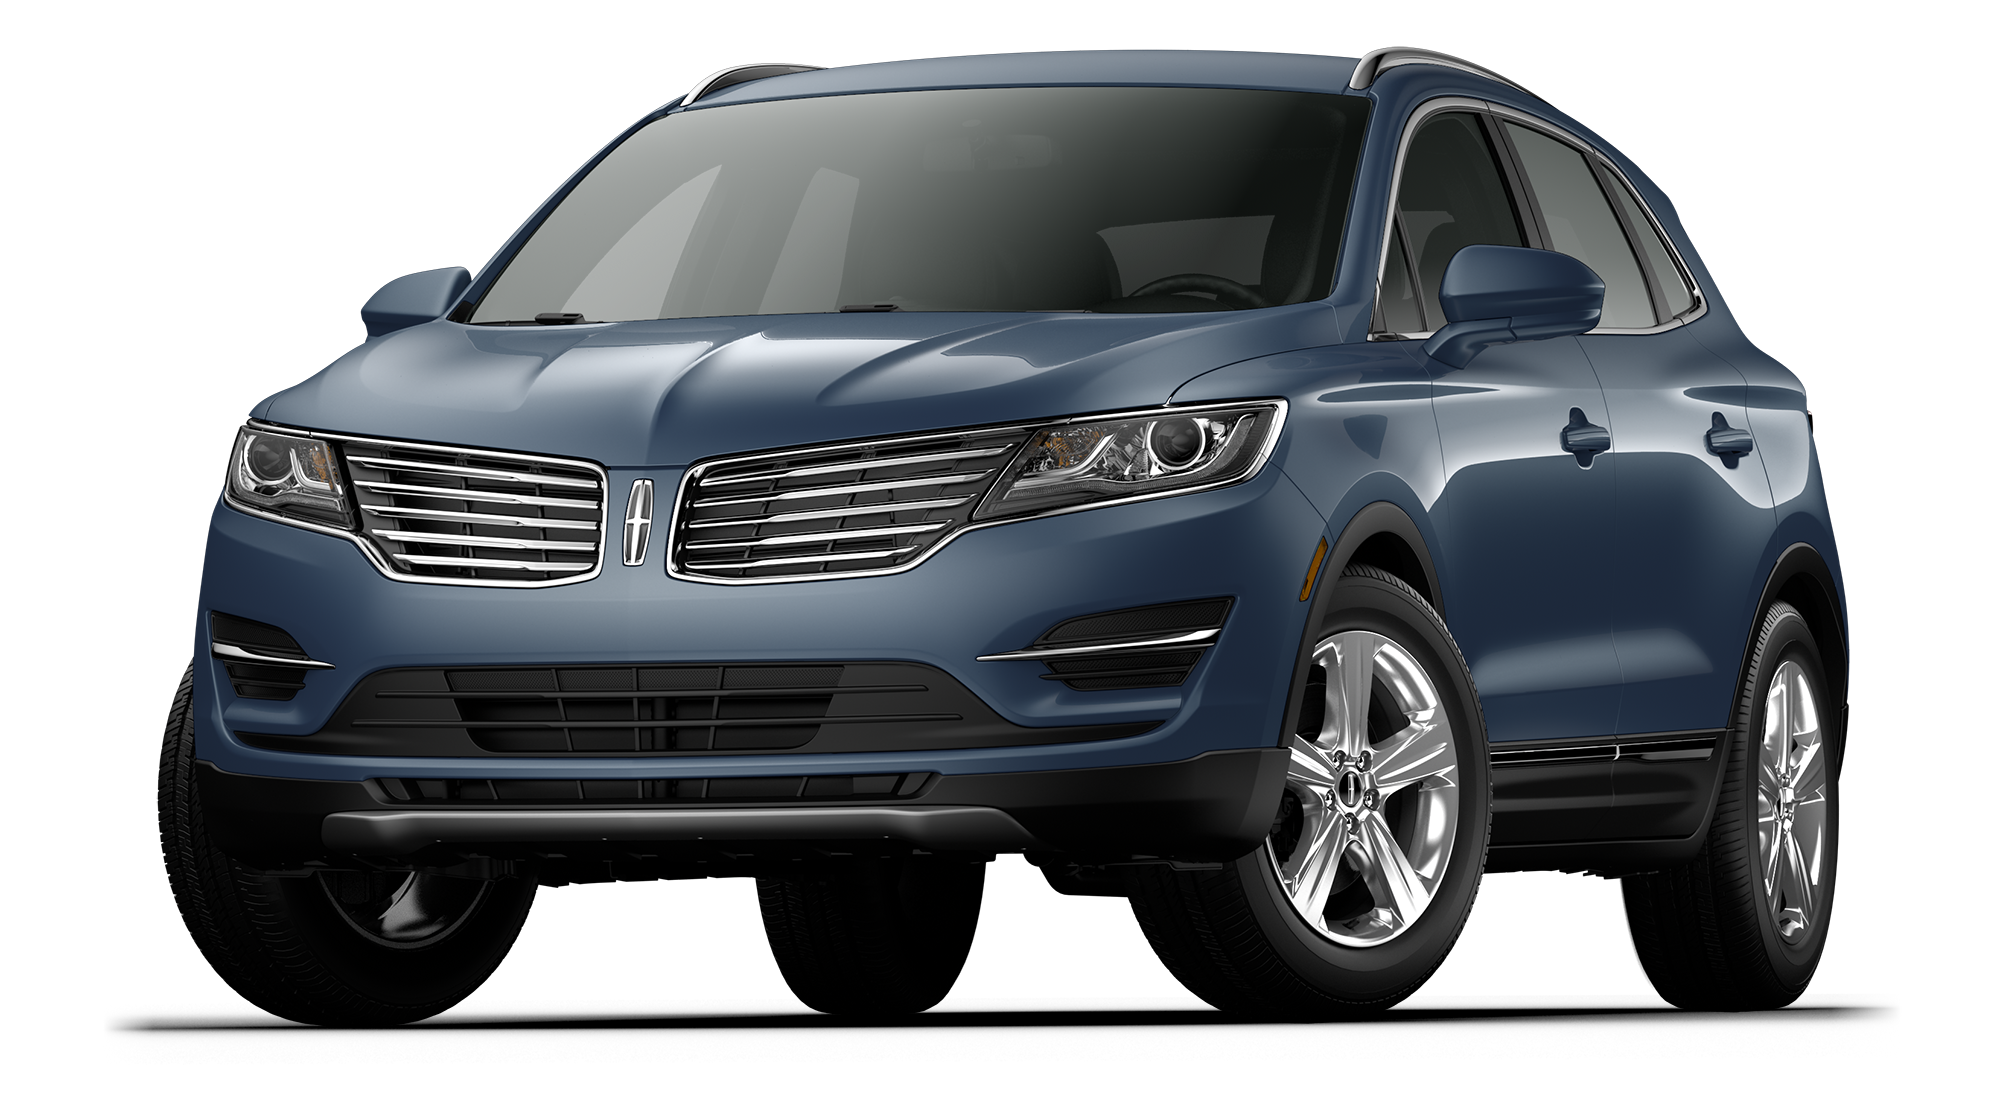 index incentives suv norwood finance rebates lease mkc specials htm lincoln mkx global in